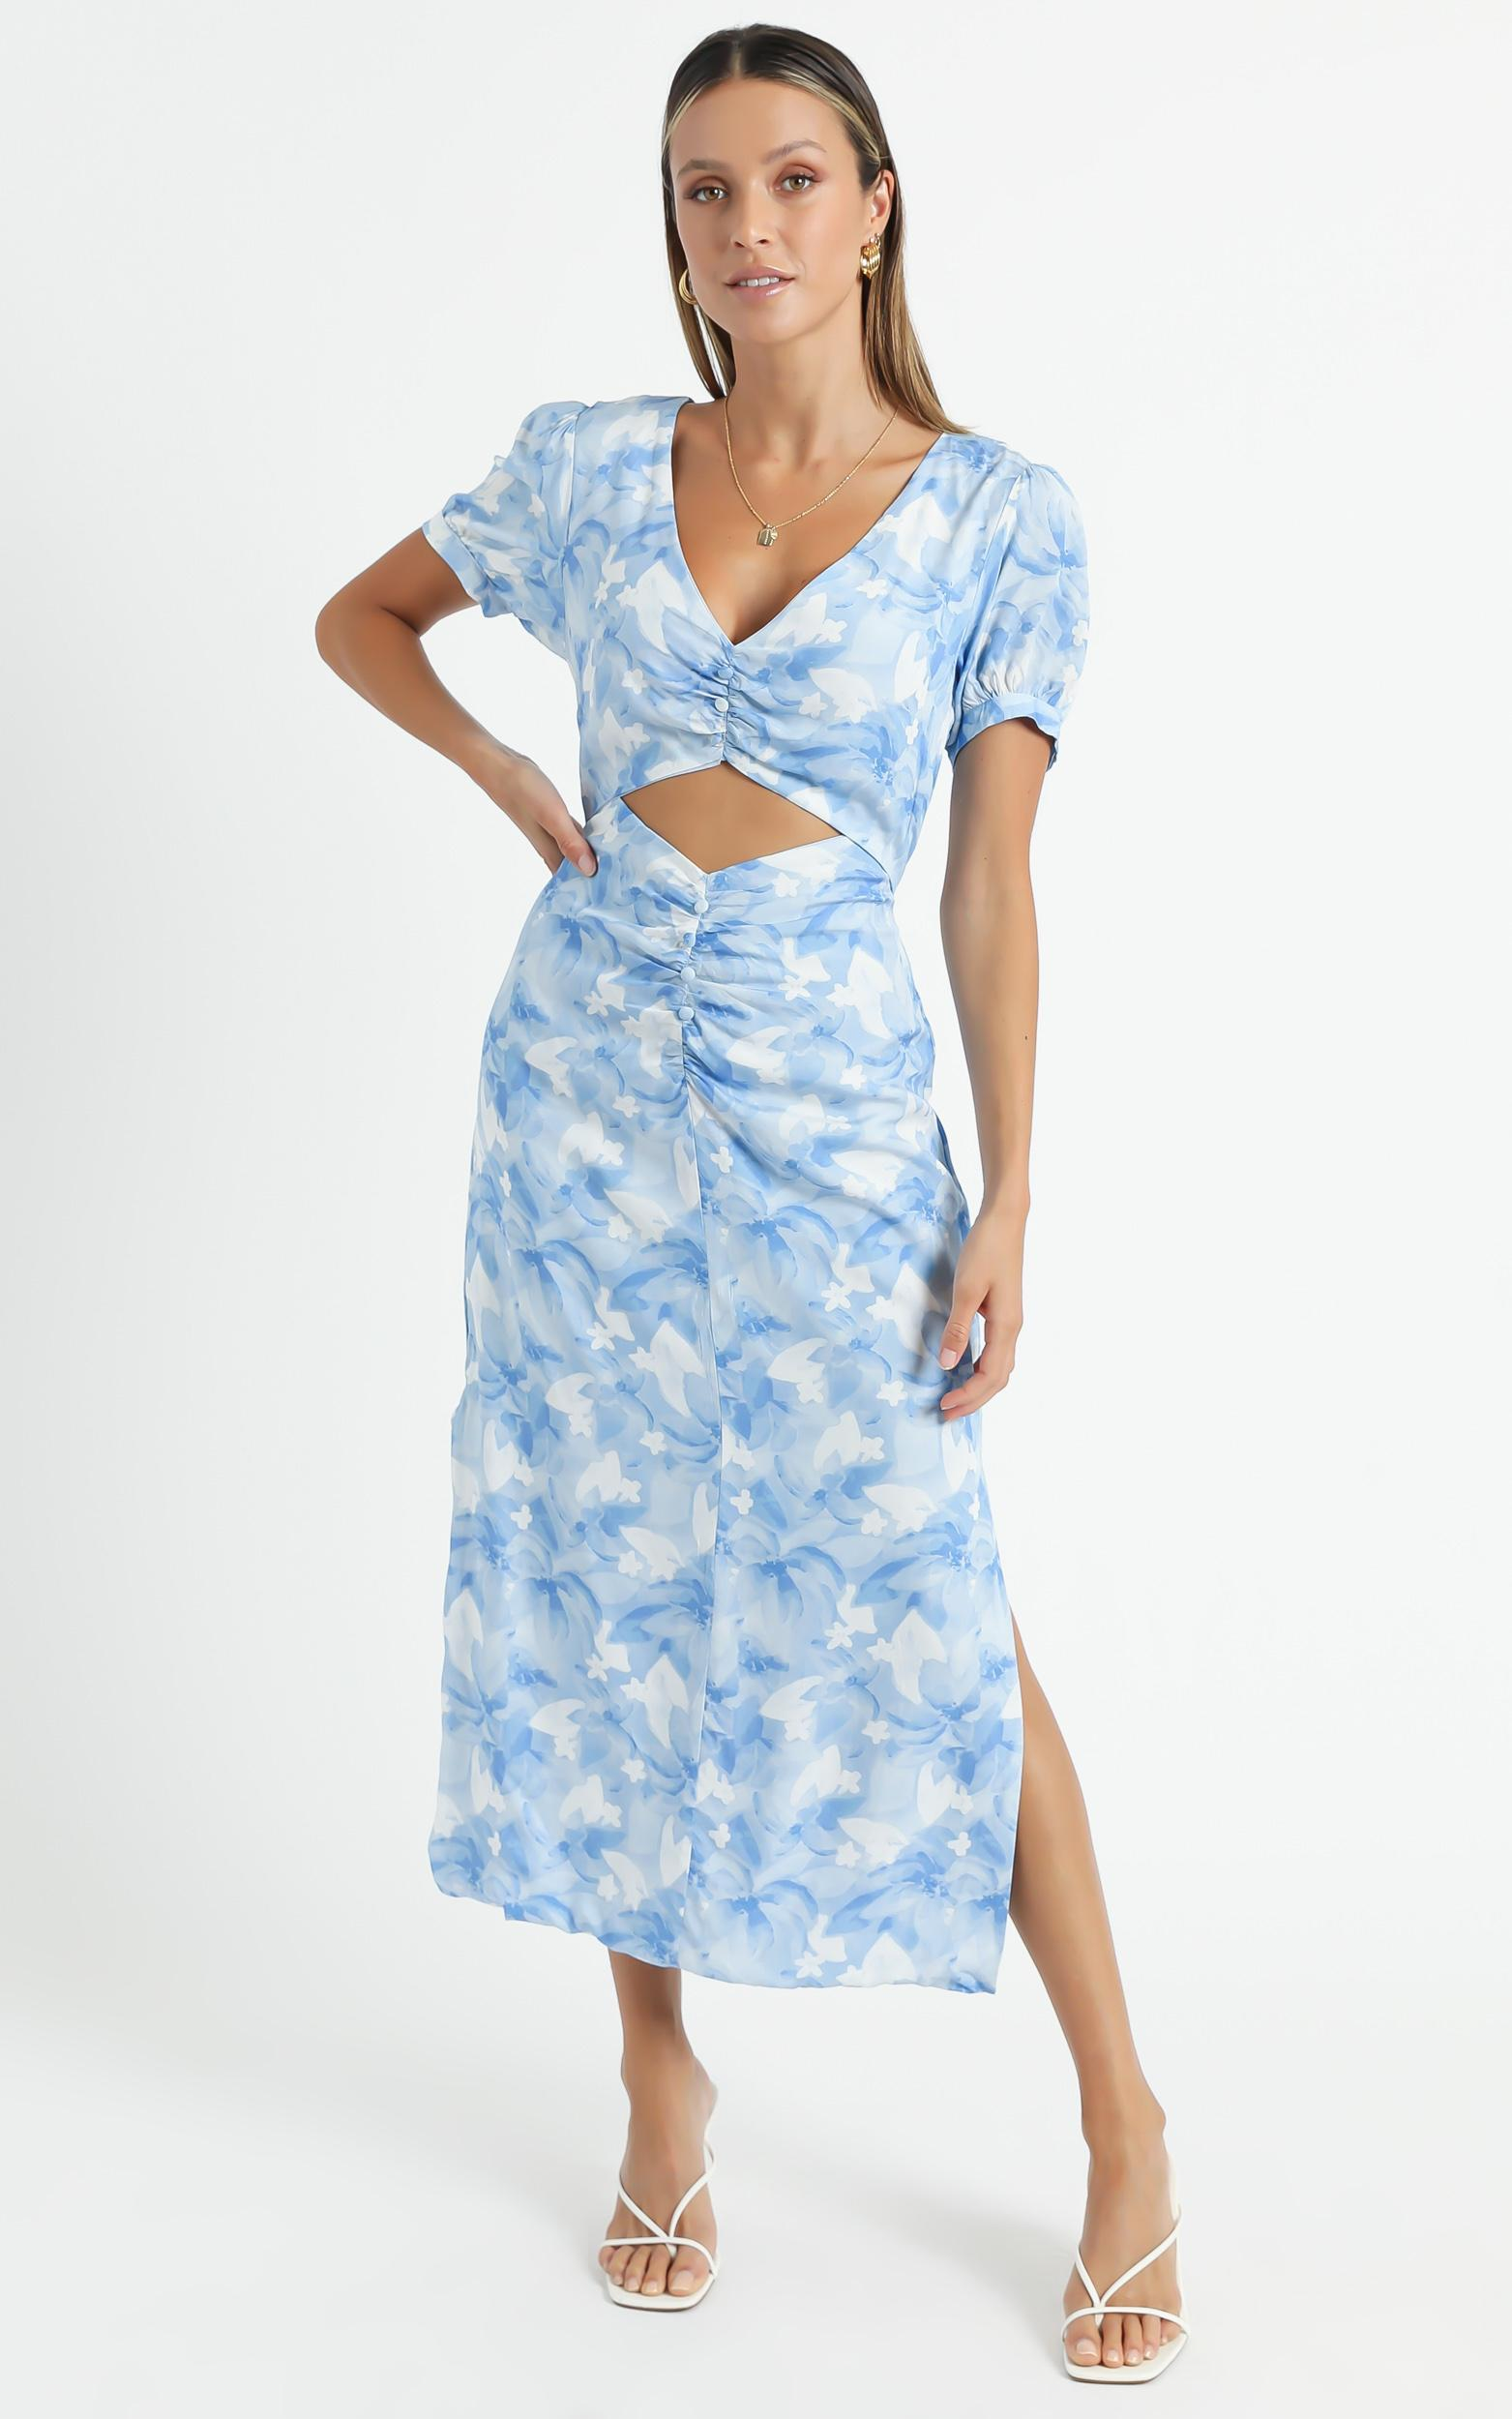 Fraser Dress in Cloudy Floral - 6 (XS), Blue, hi-res image number null